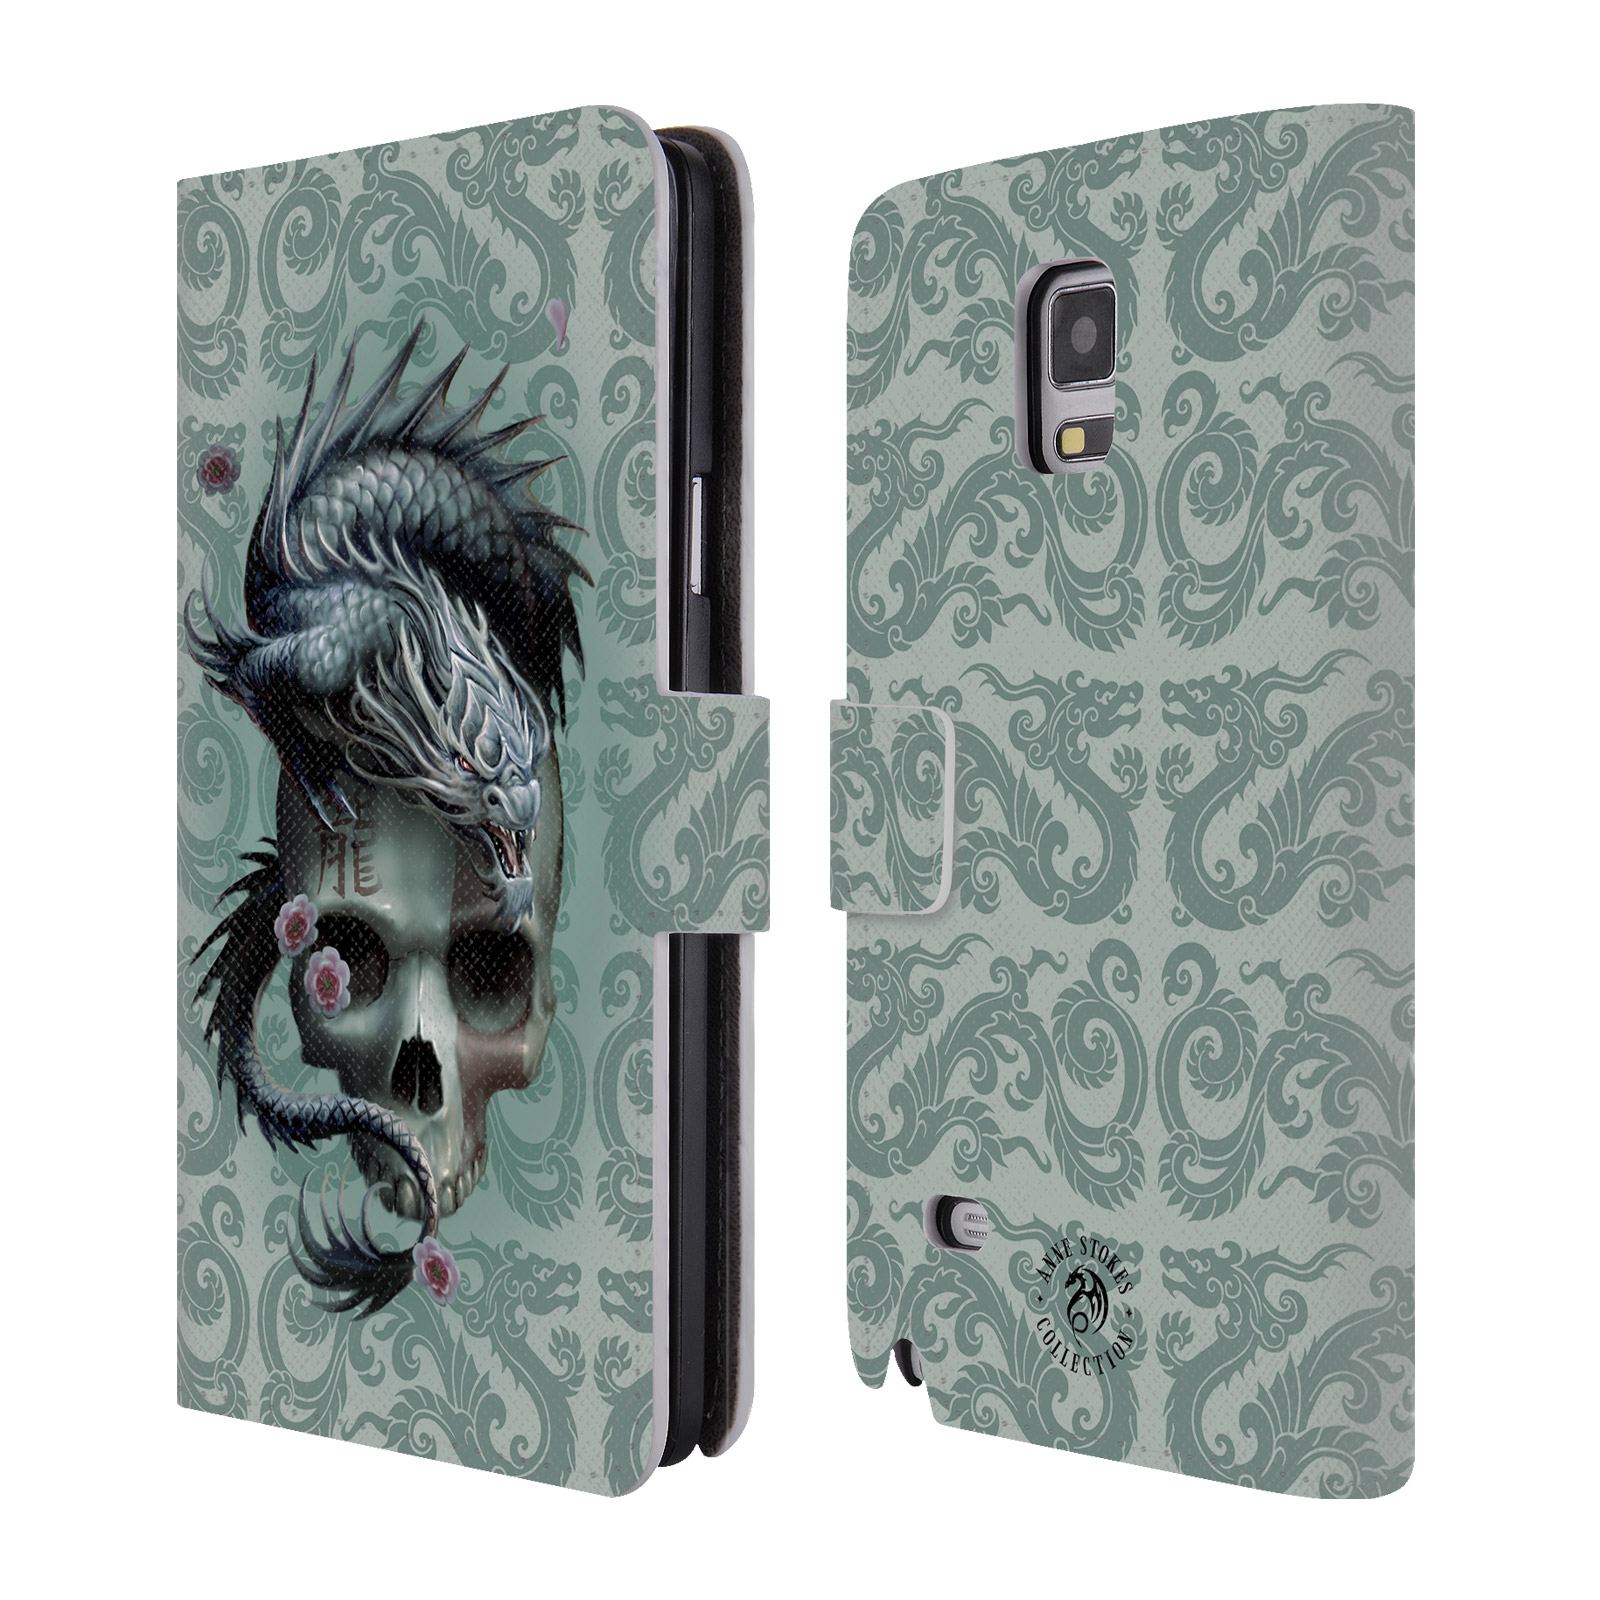 OFFICIAL ANNE STOKES ORIENTAL SKULL LEATHER BOOK WALLET CASE COVER FOR SAMSUNG PHONES 1